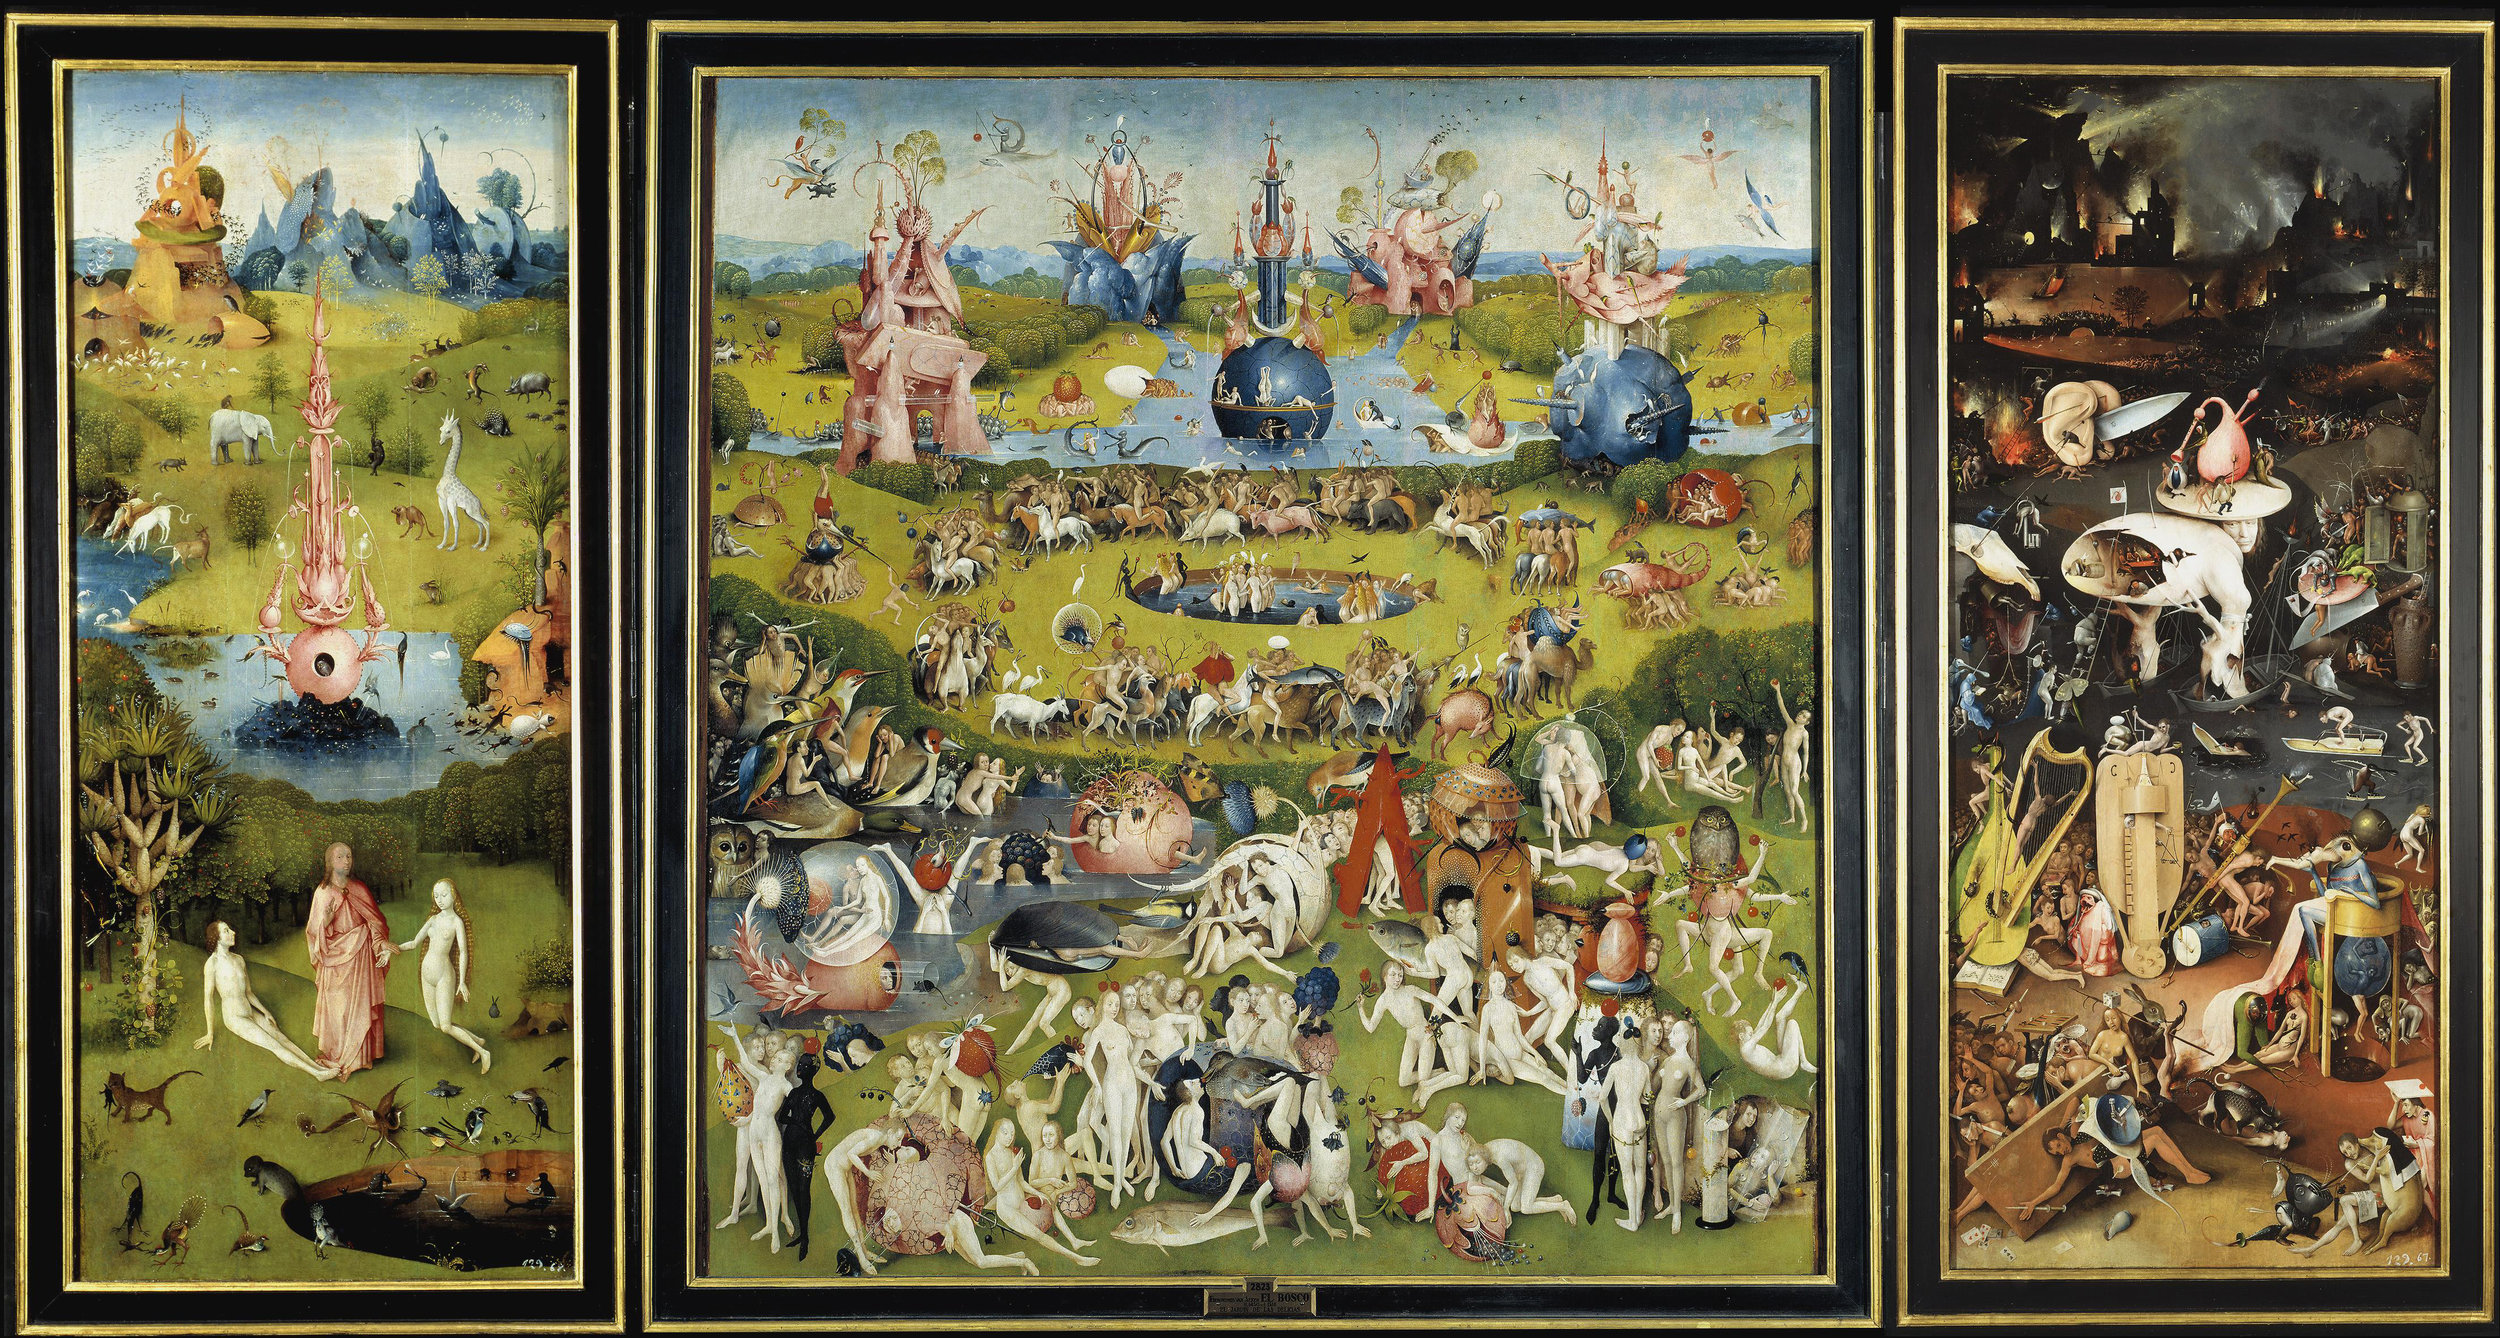 'The Garden of Earthly Delights' by Hieronymus Bosch - courtesy of  Wikimedia Commons